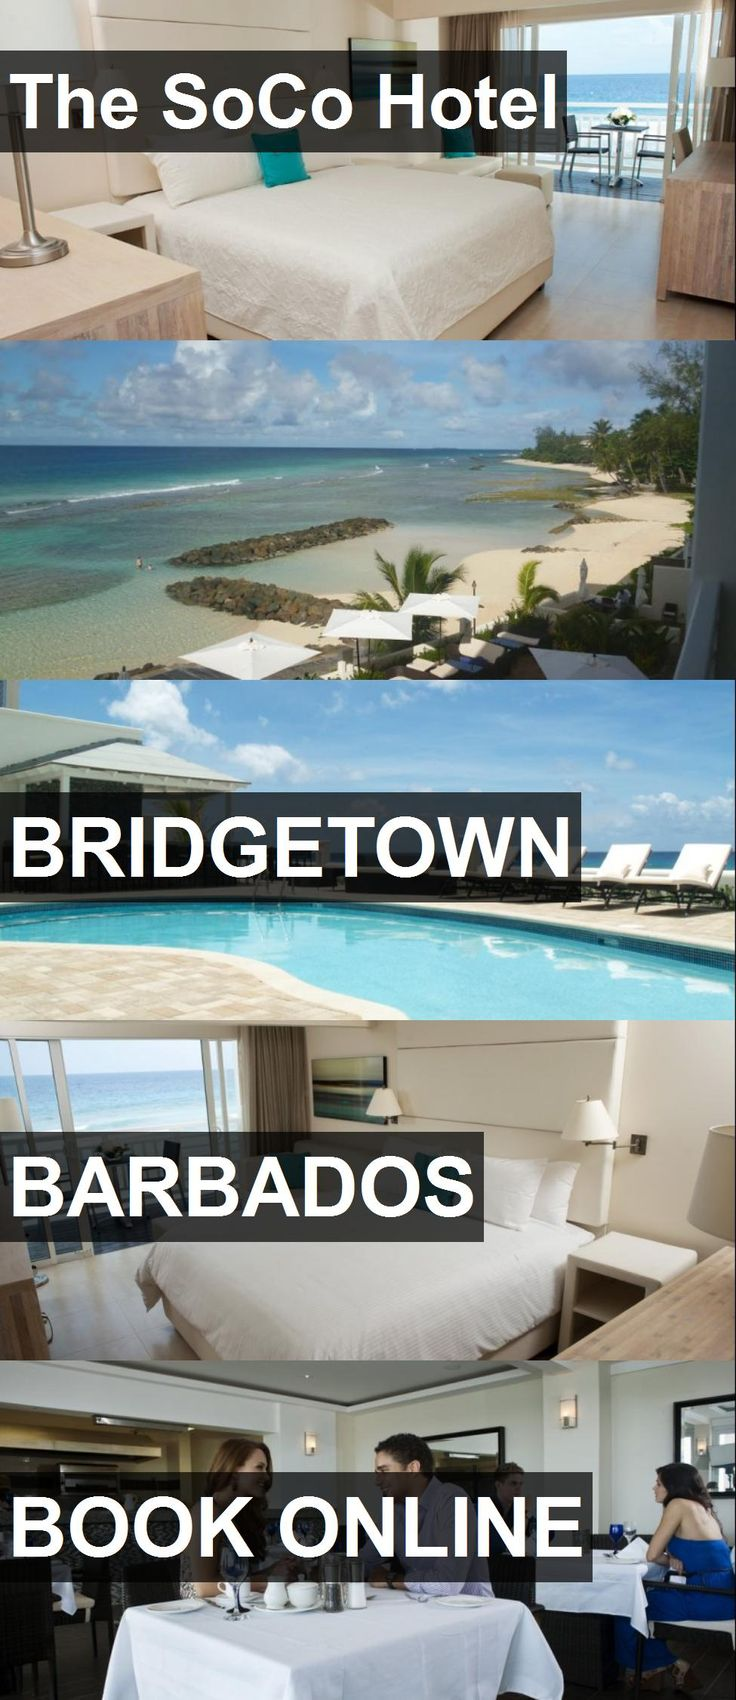 The SoCo Hotel in Bridgetown, Barbados. For more information, photos, reviews and best prices please follow the link. #Barbados #Bridgetown #travel #vacation #hotel